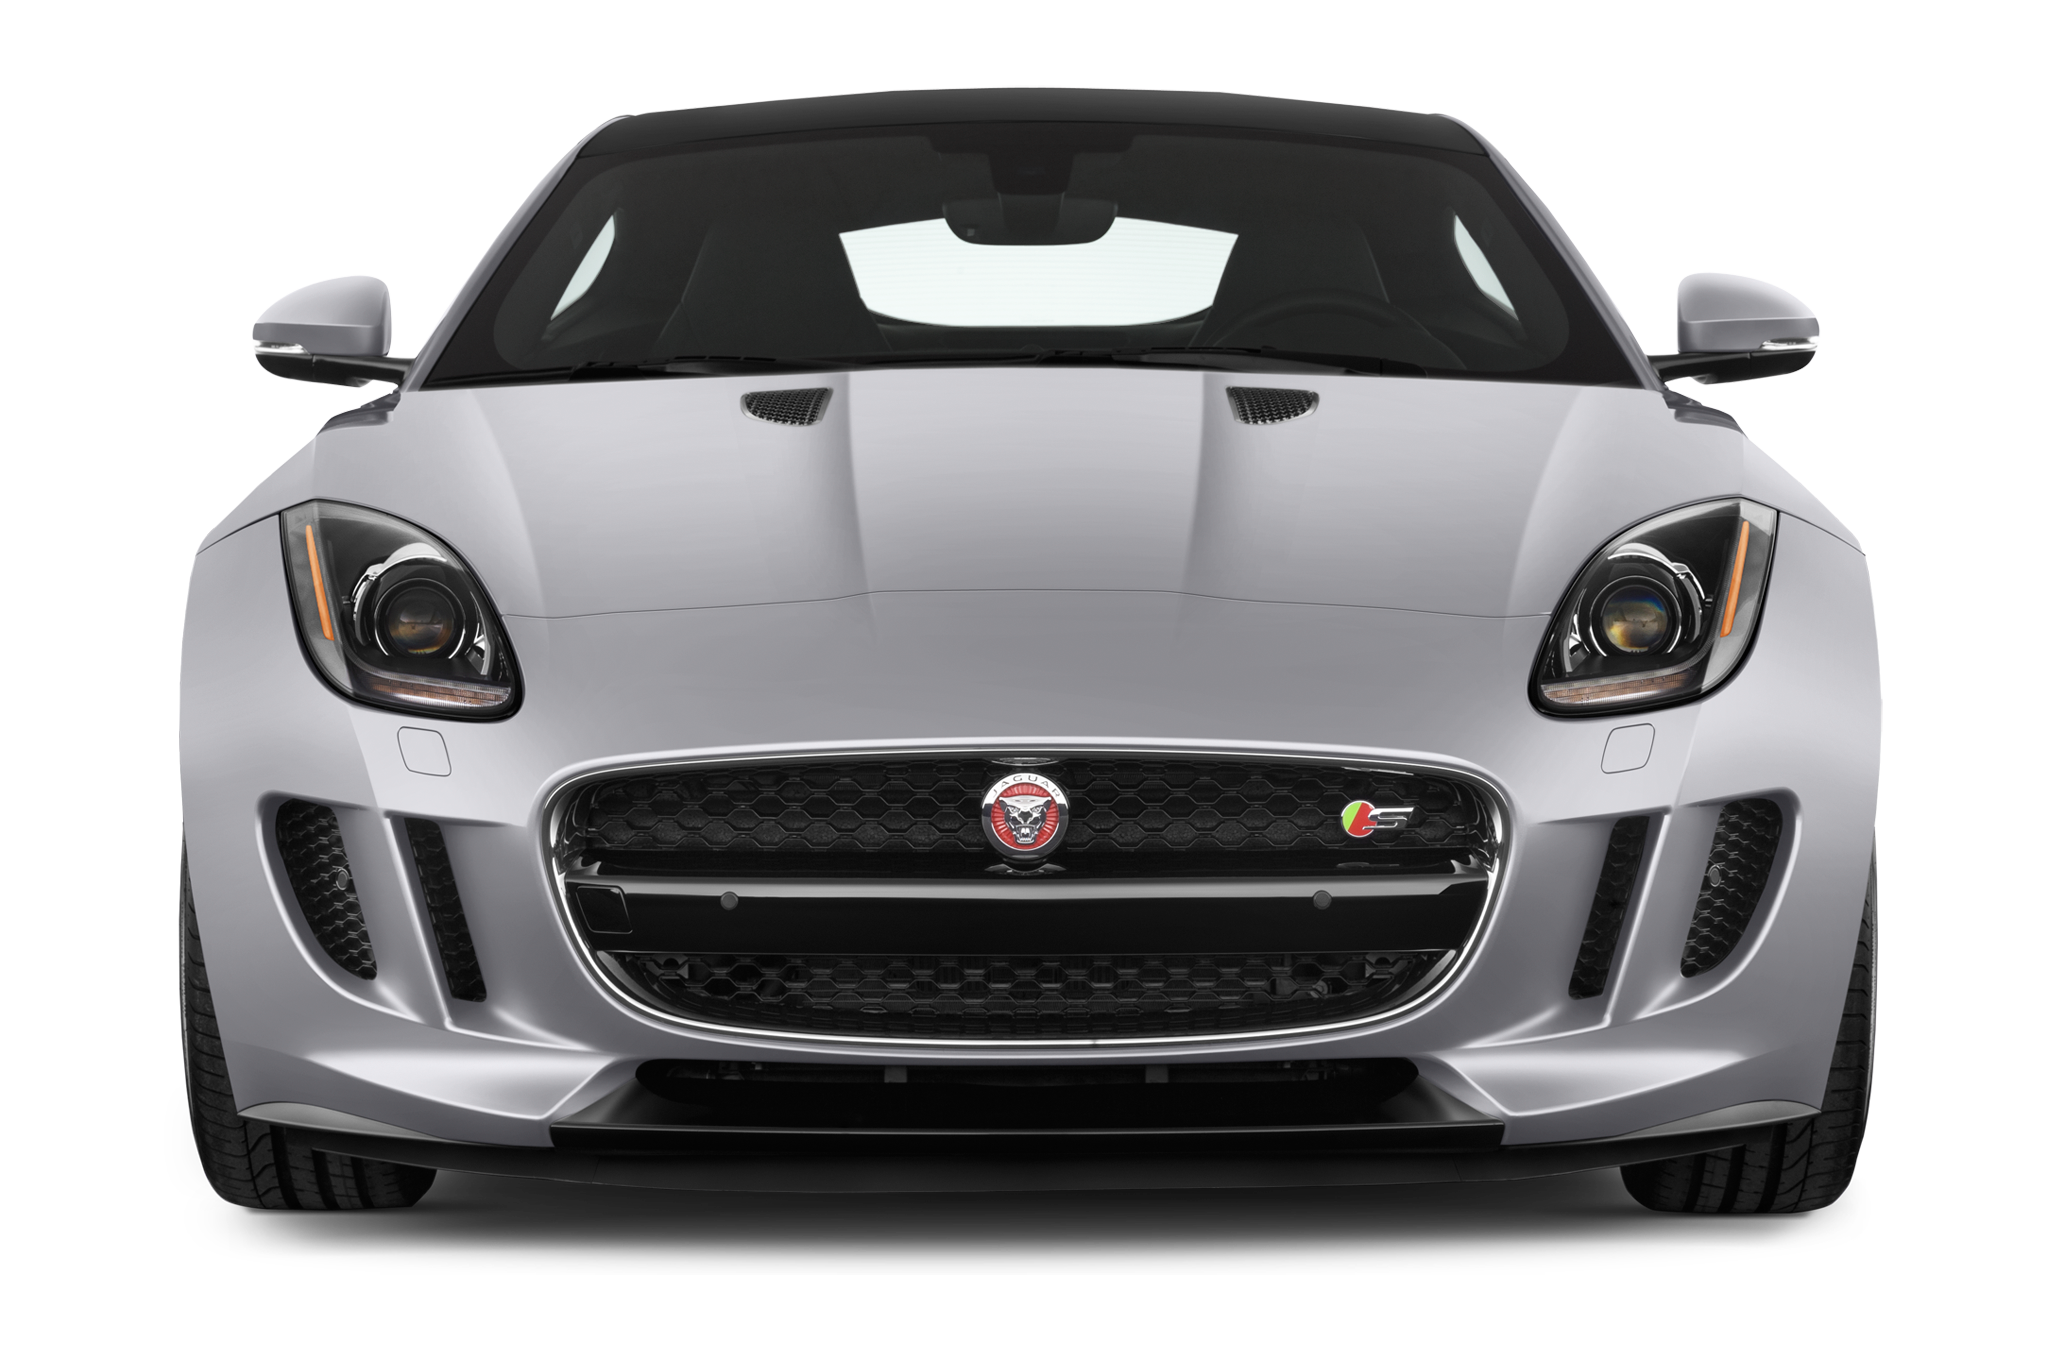 Car headlights clipart transparent stock Tunnel Run in a 2017 Jaguar F-Type SVR transparent stock